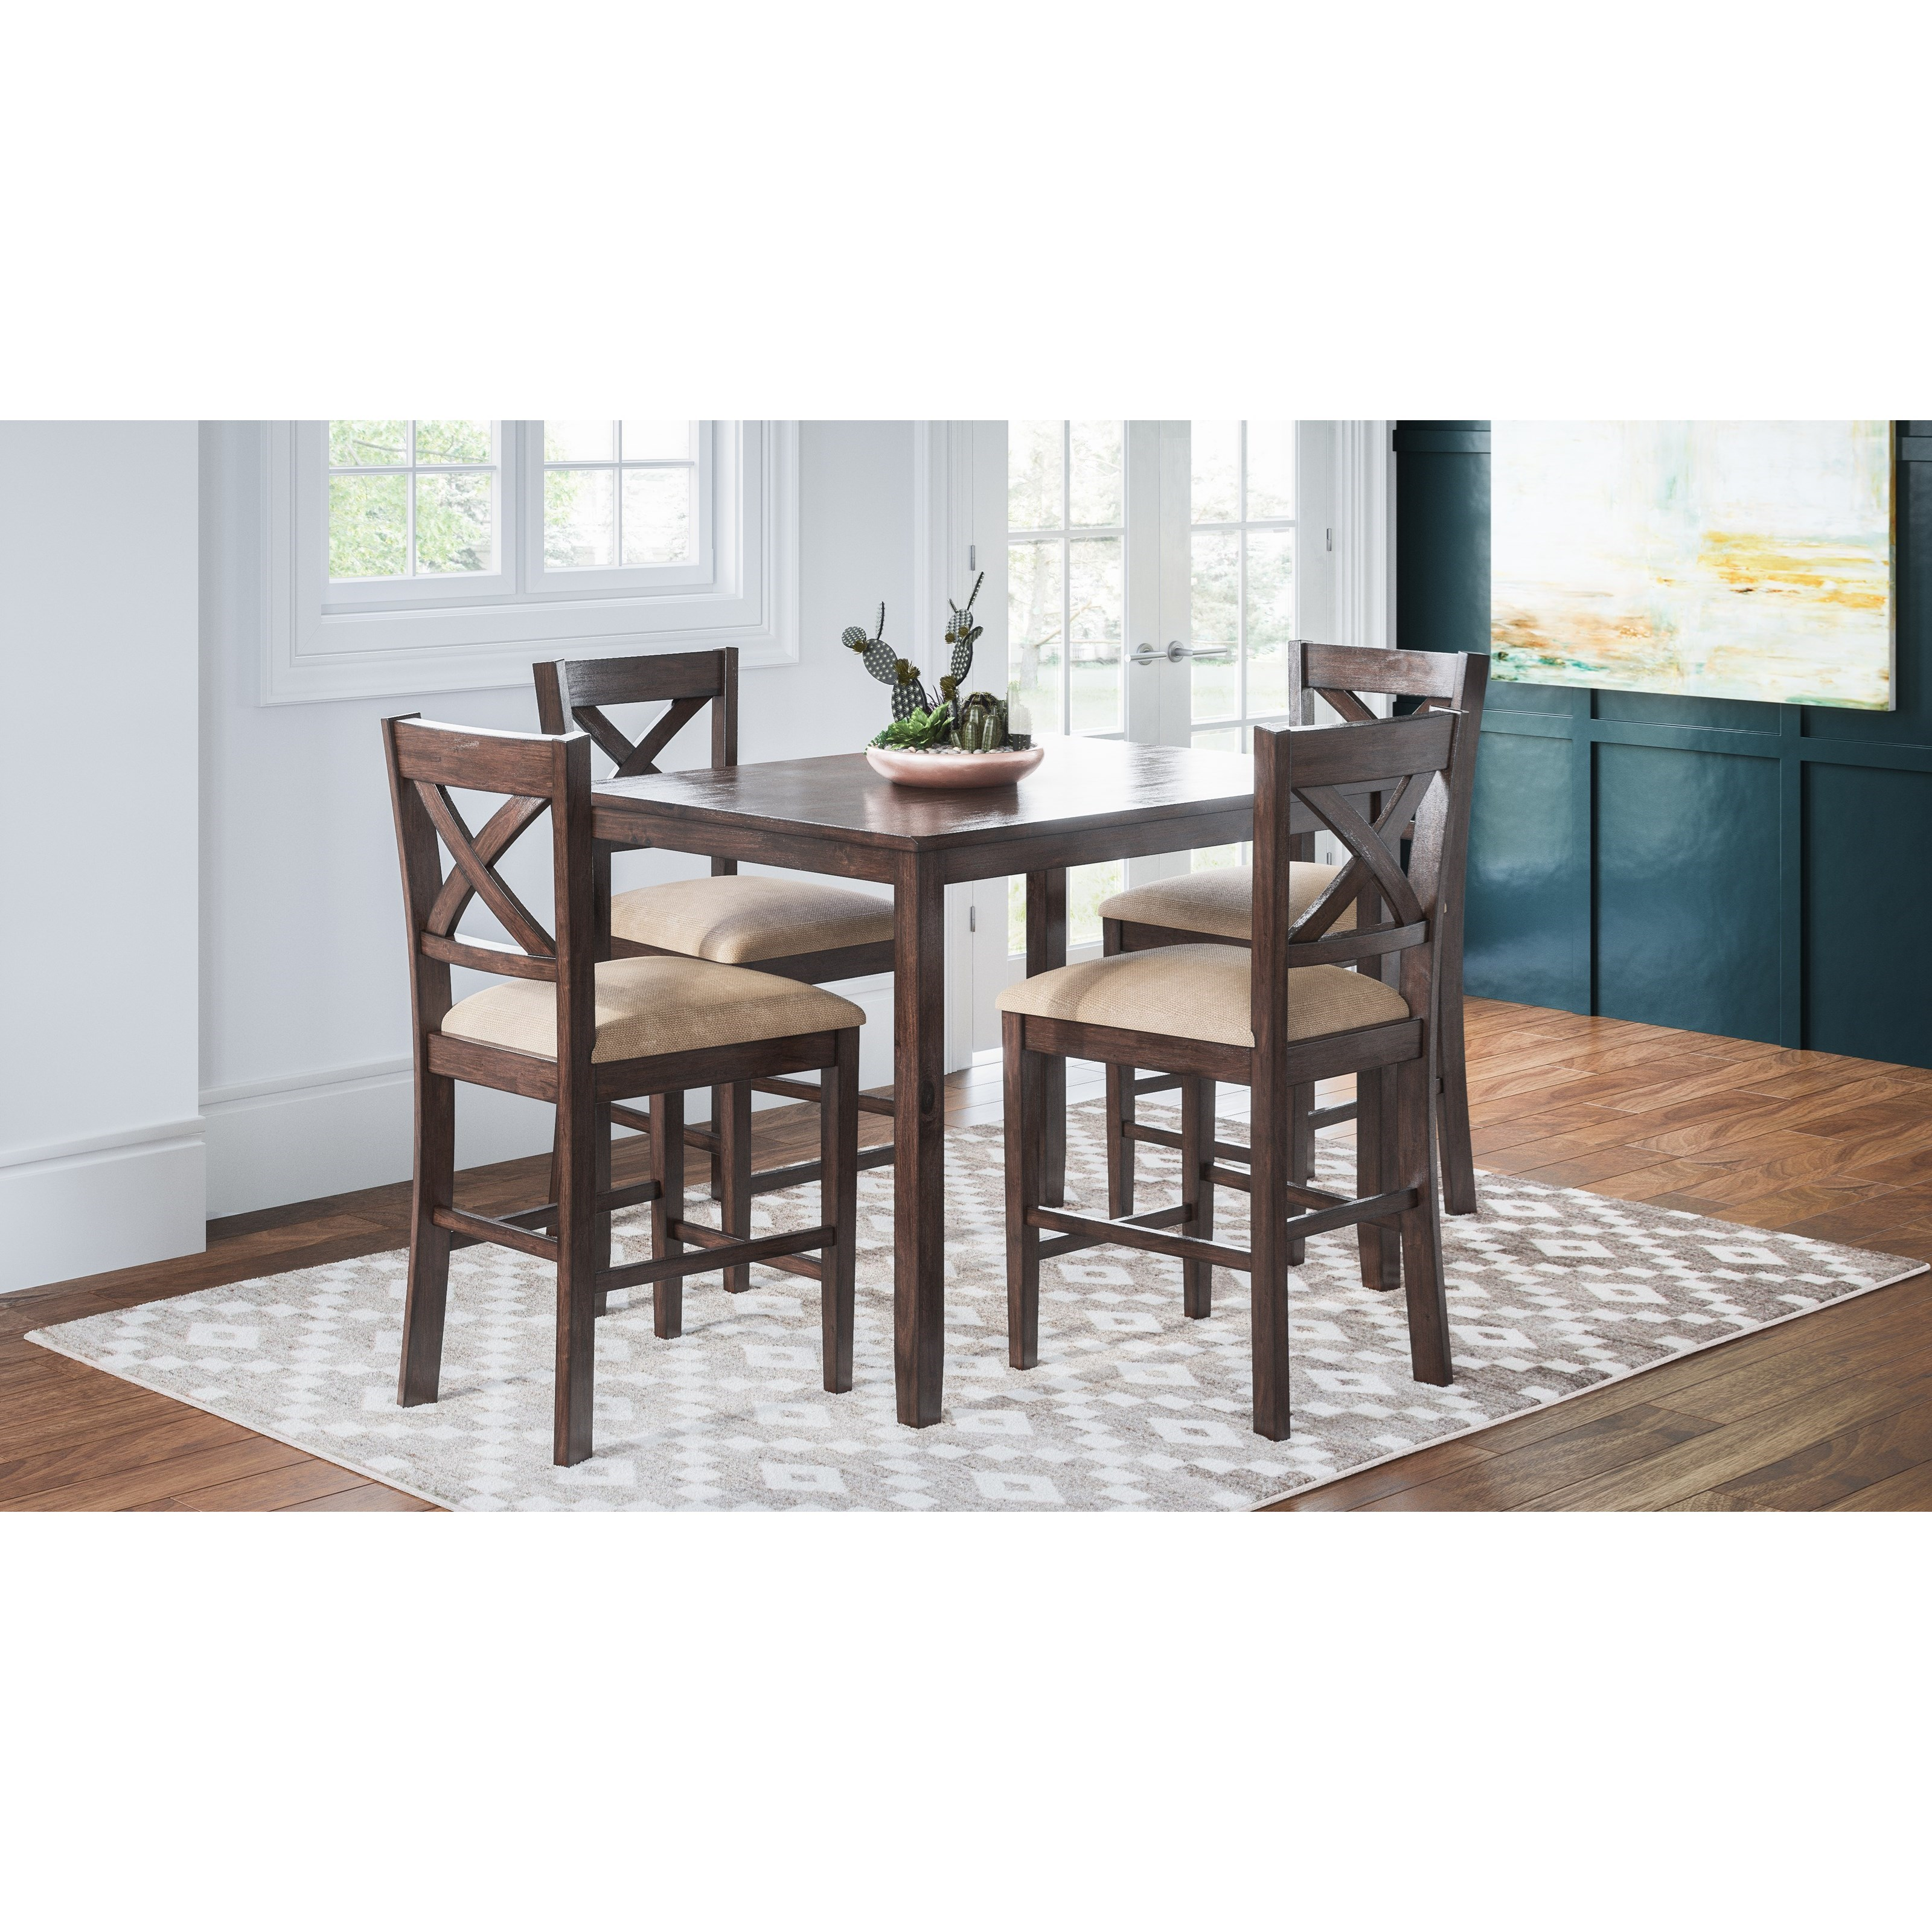 Jofran Brinkley 5 Piece Counter Height Dining Set Includes Table And 4 Chairs Morris Home Dining 5 Piece Sets